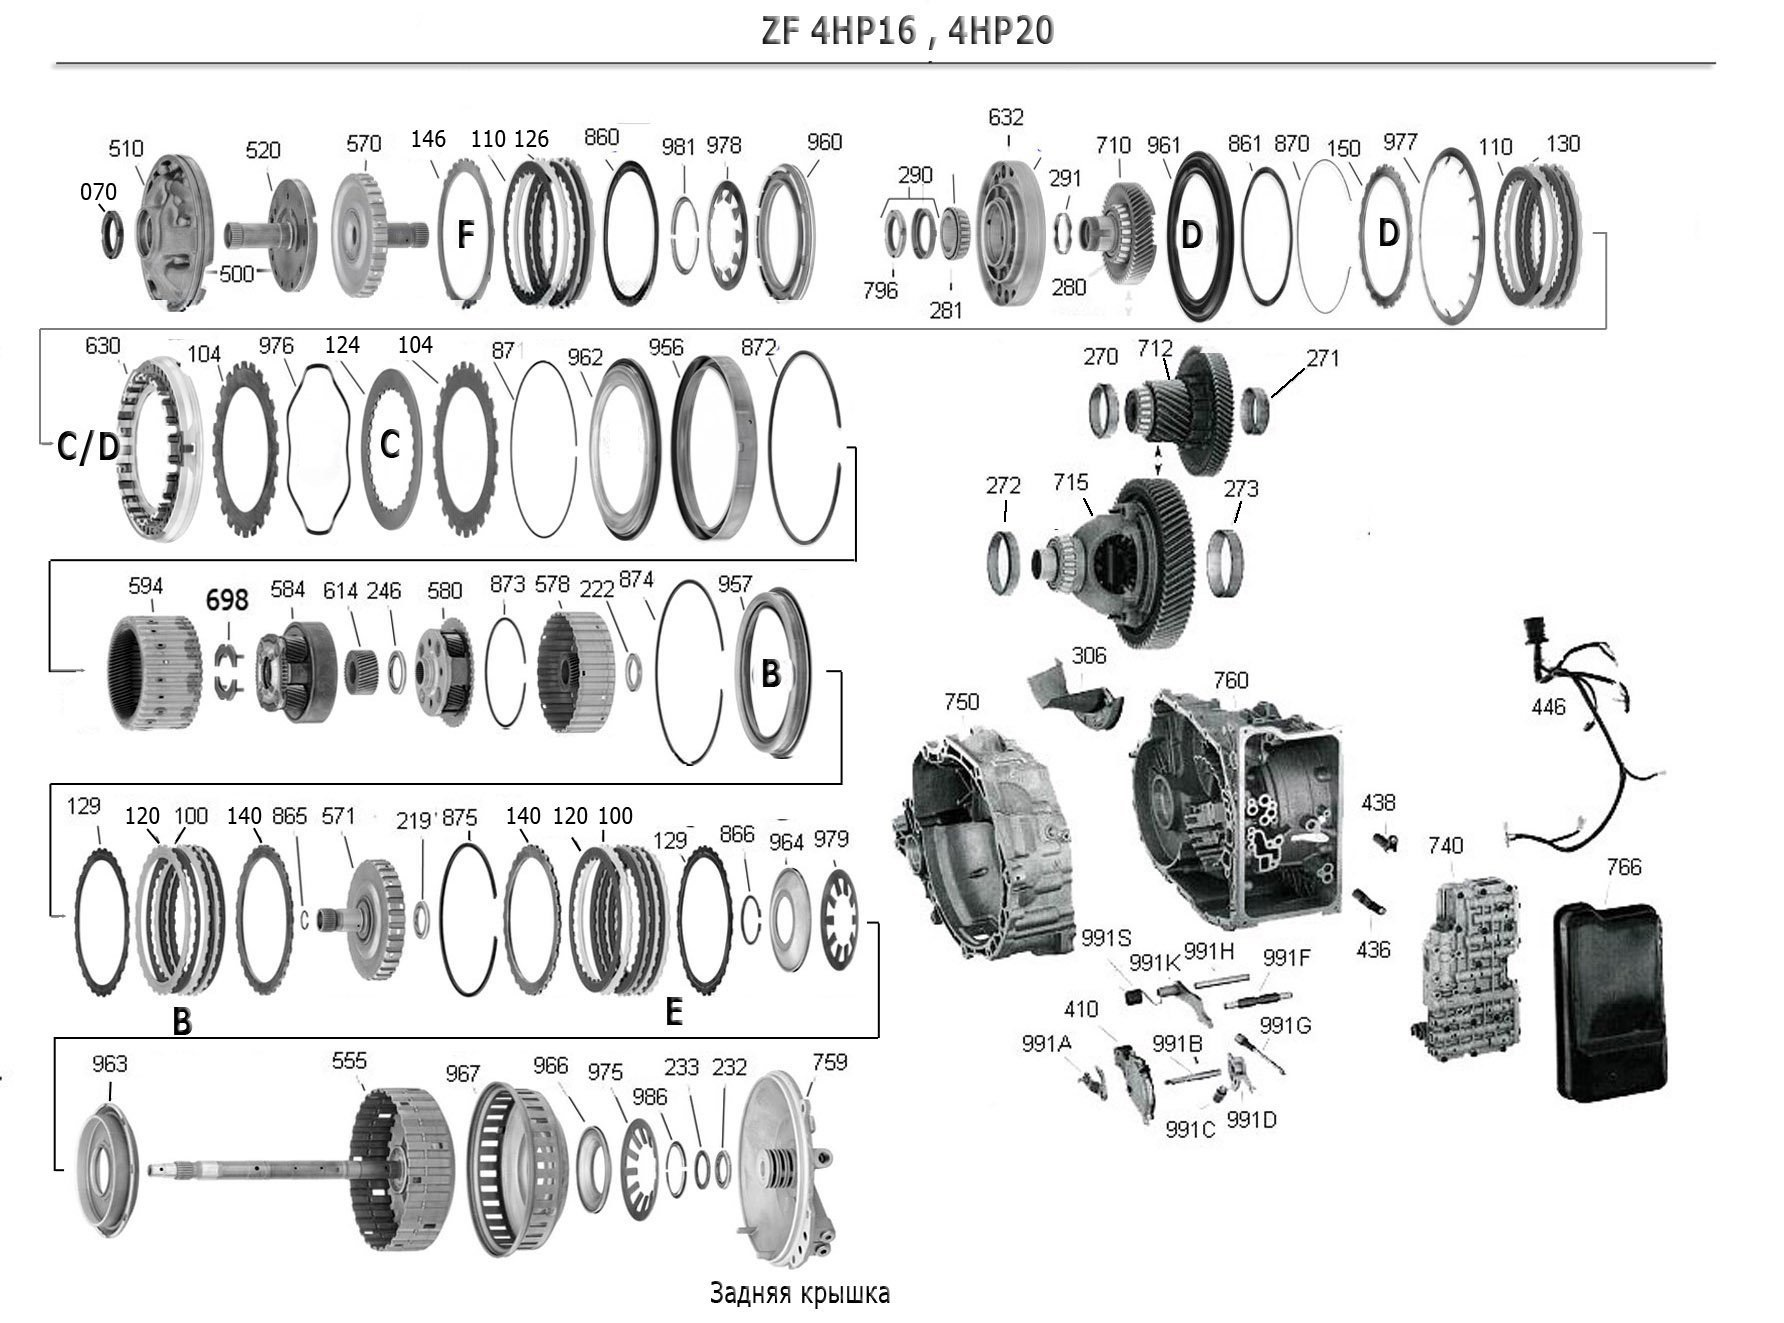 4HP20 Friction Kit